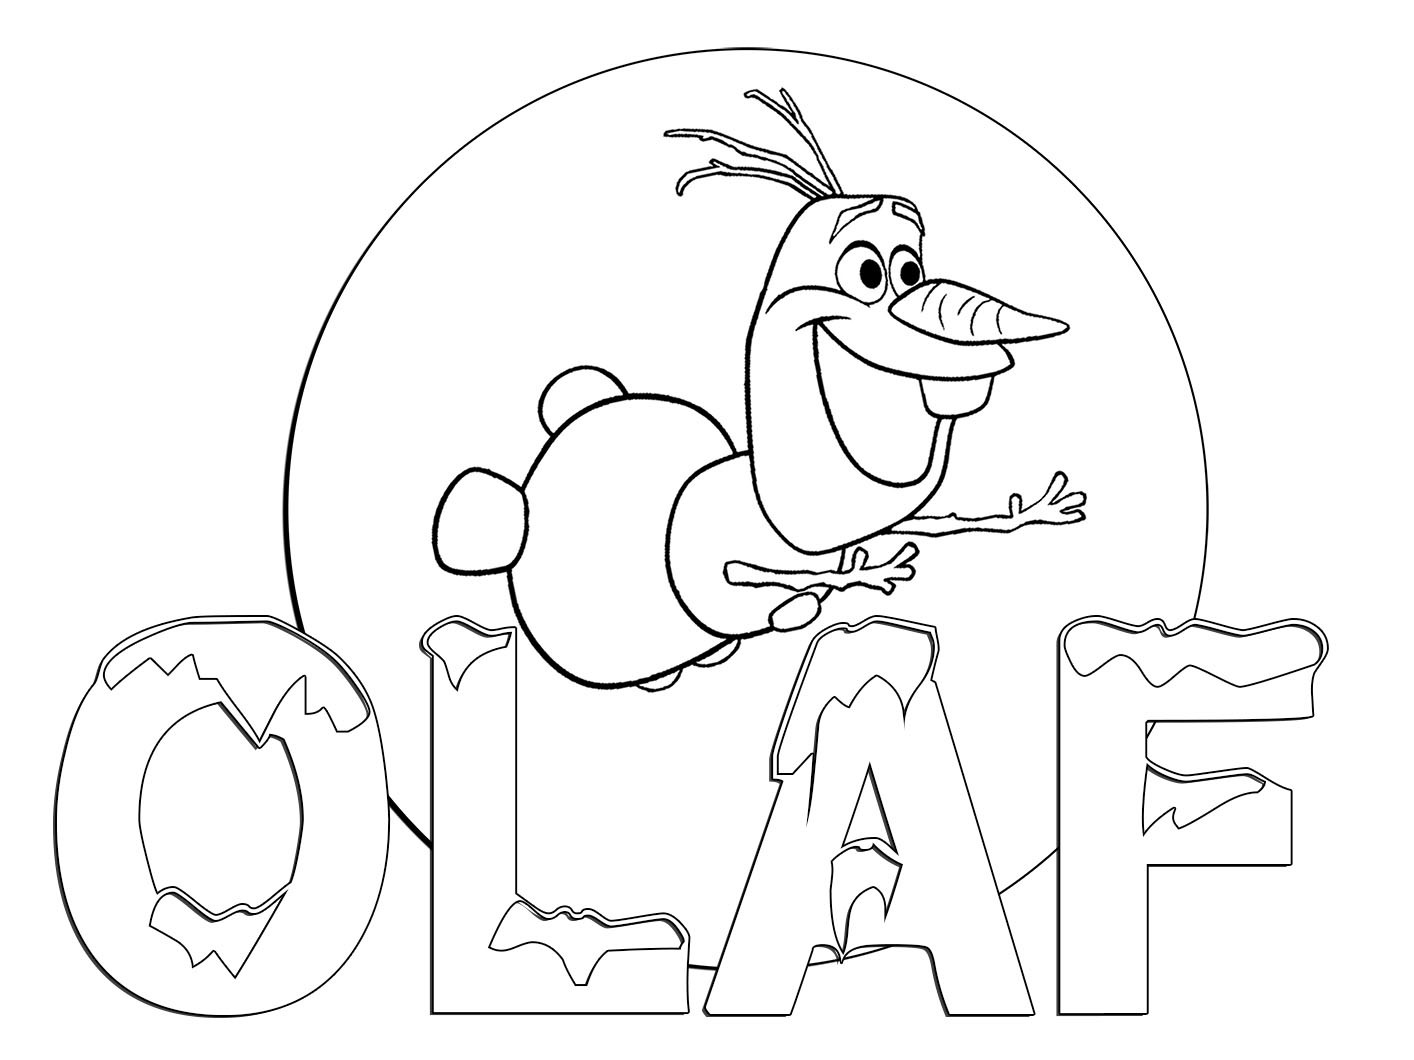 frozen character coloring pages - photo#3